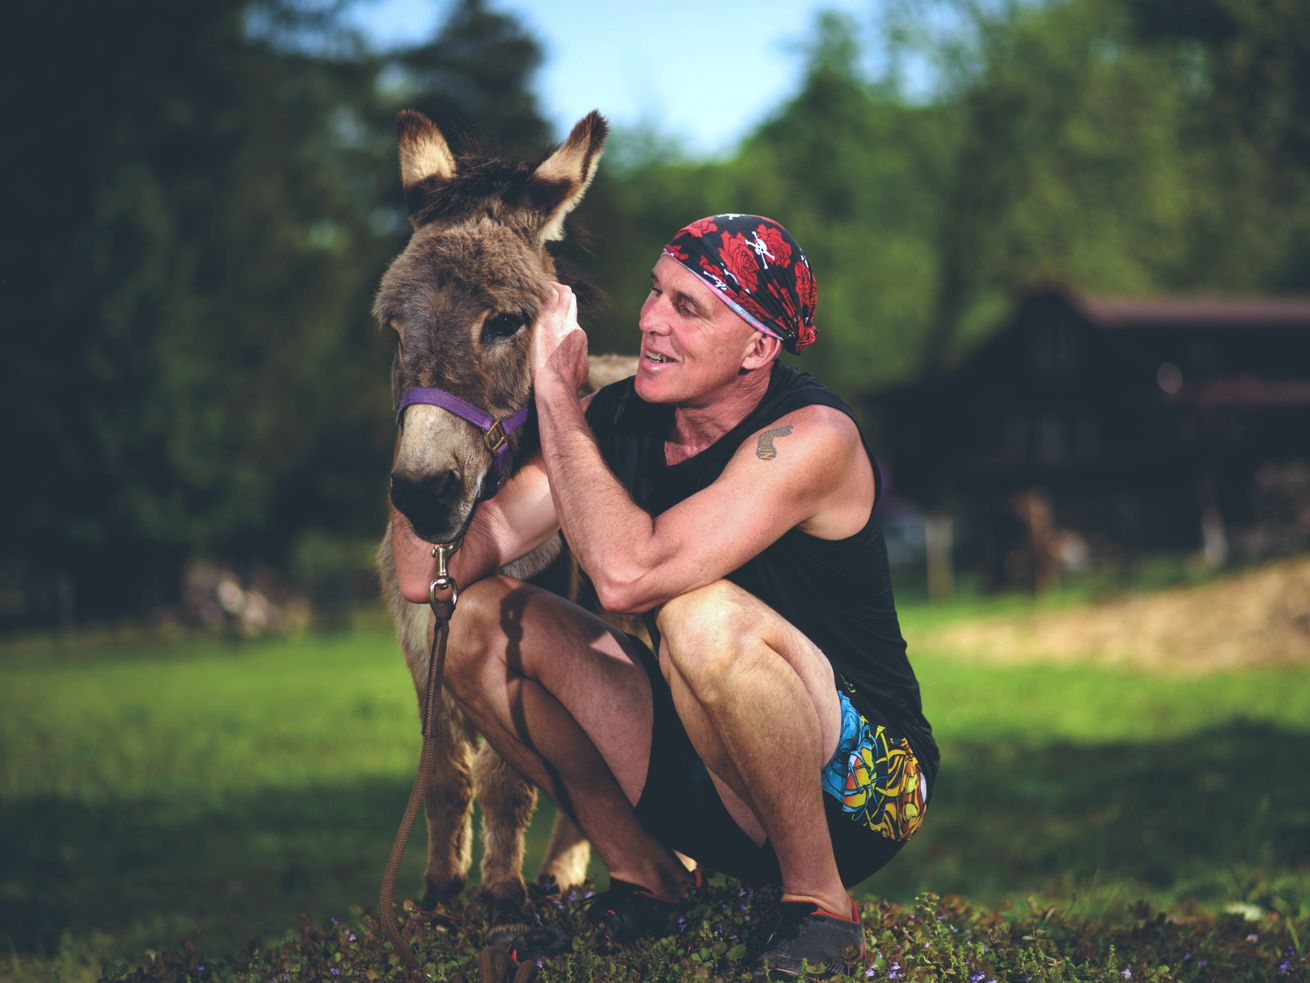 The hottest new running book is about … donkeys?